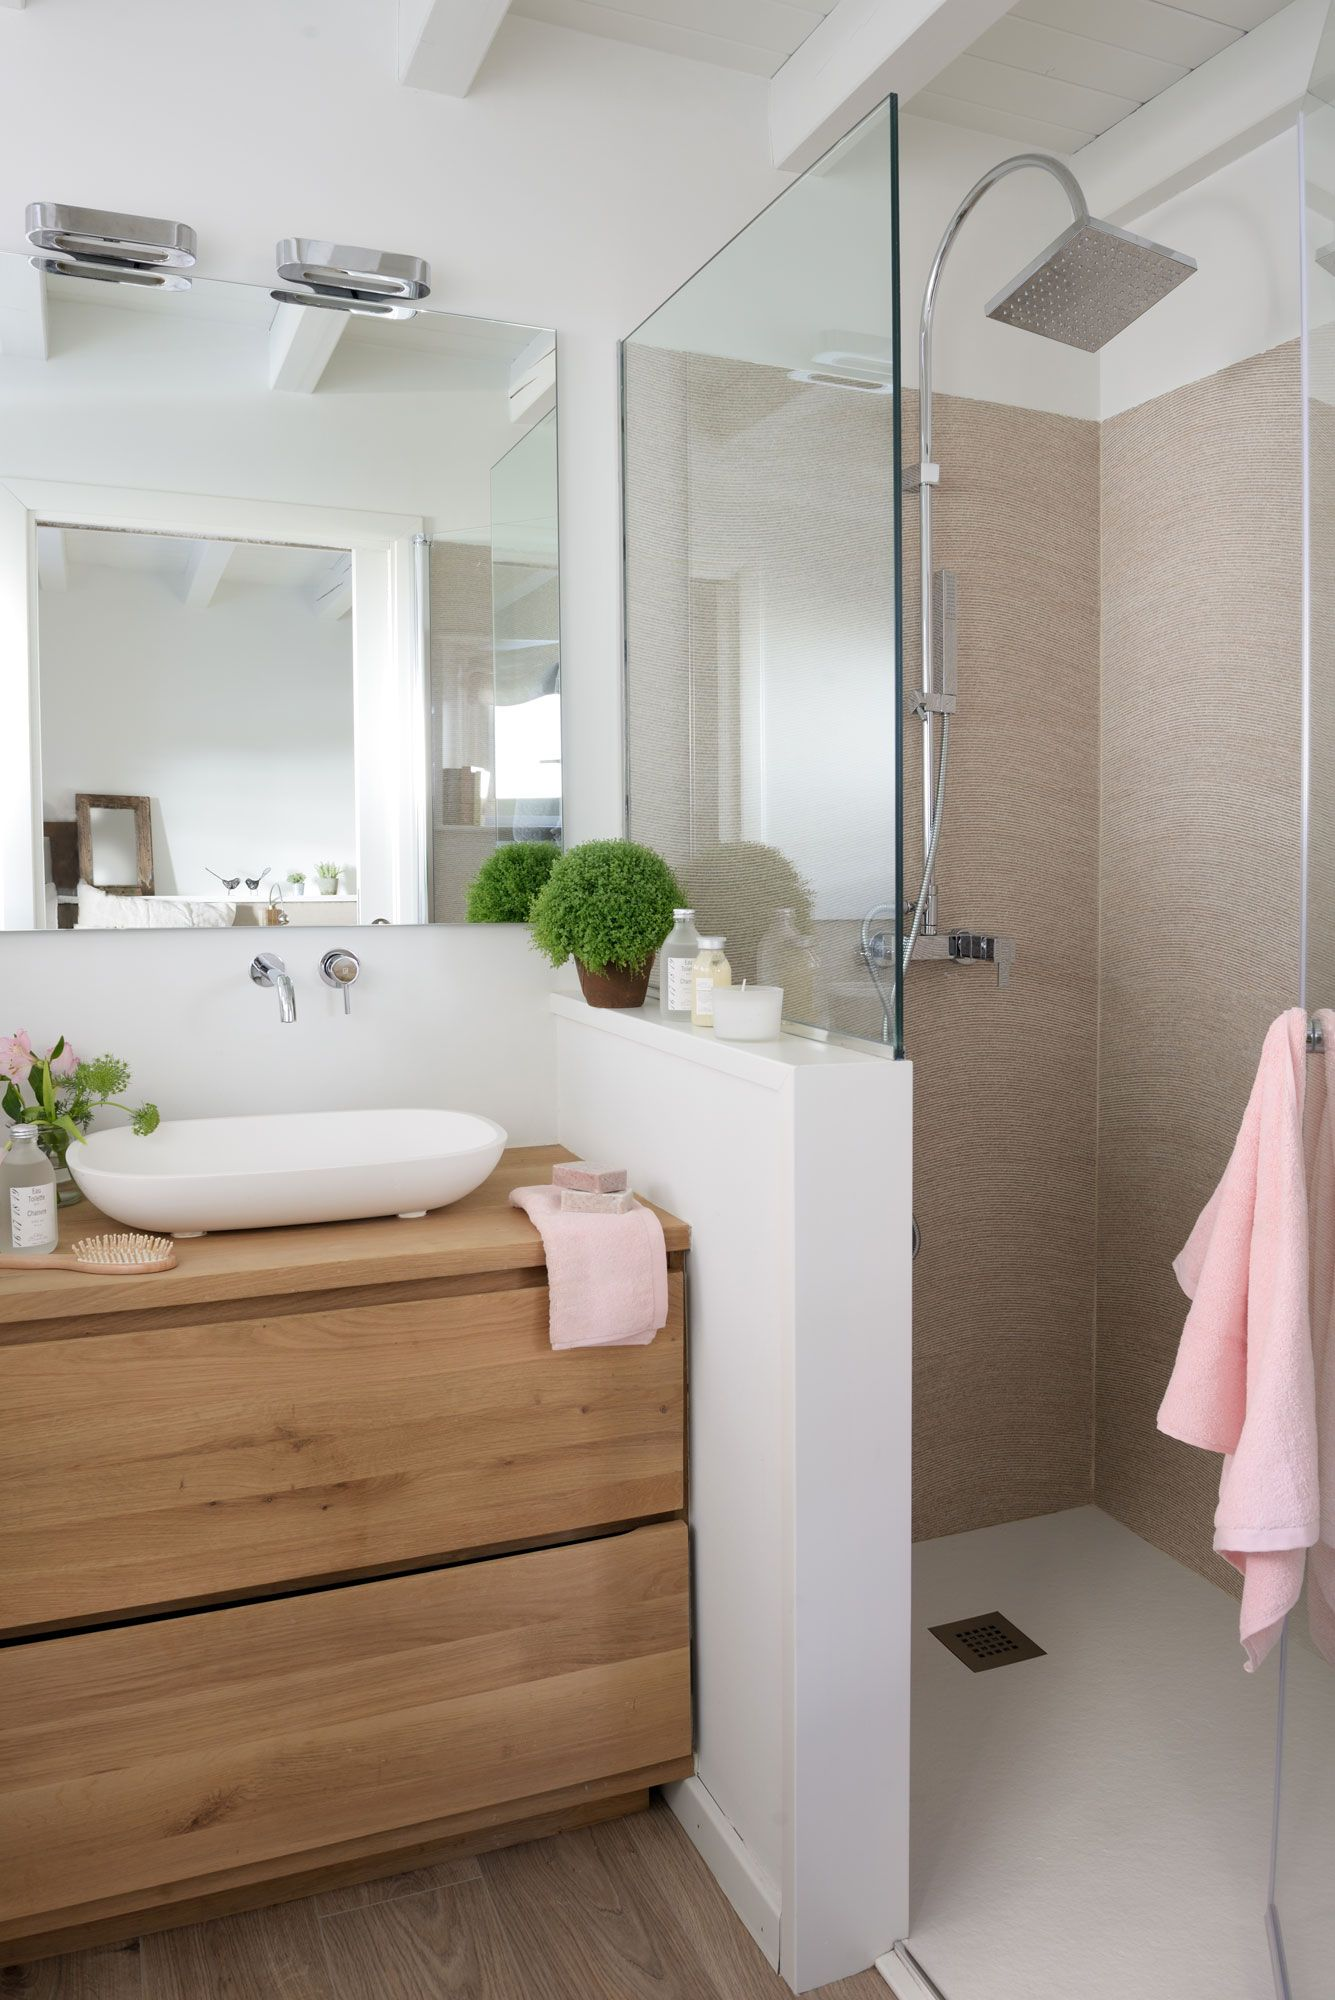 Ideas Cuartos De Baño Una Ducha De Placer In 2019 Cuartos De Baño Bathroom Bathroom